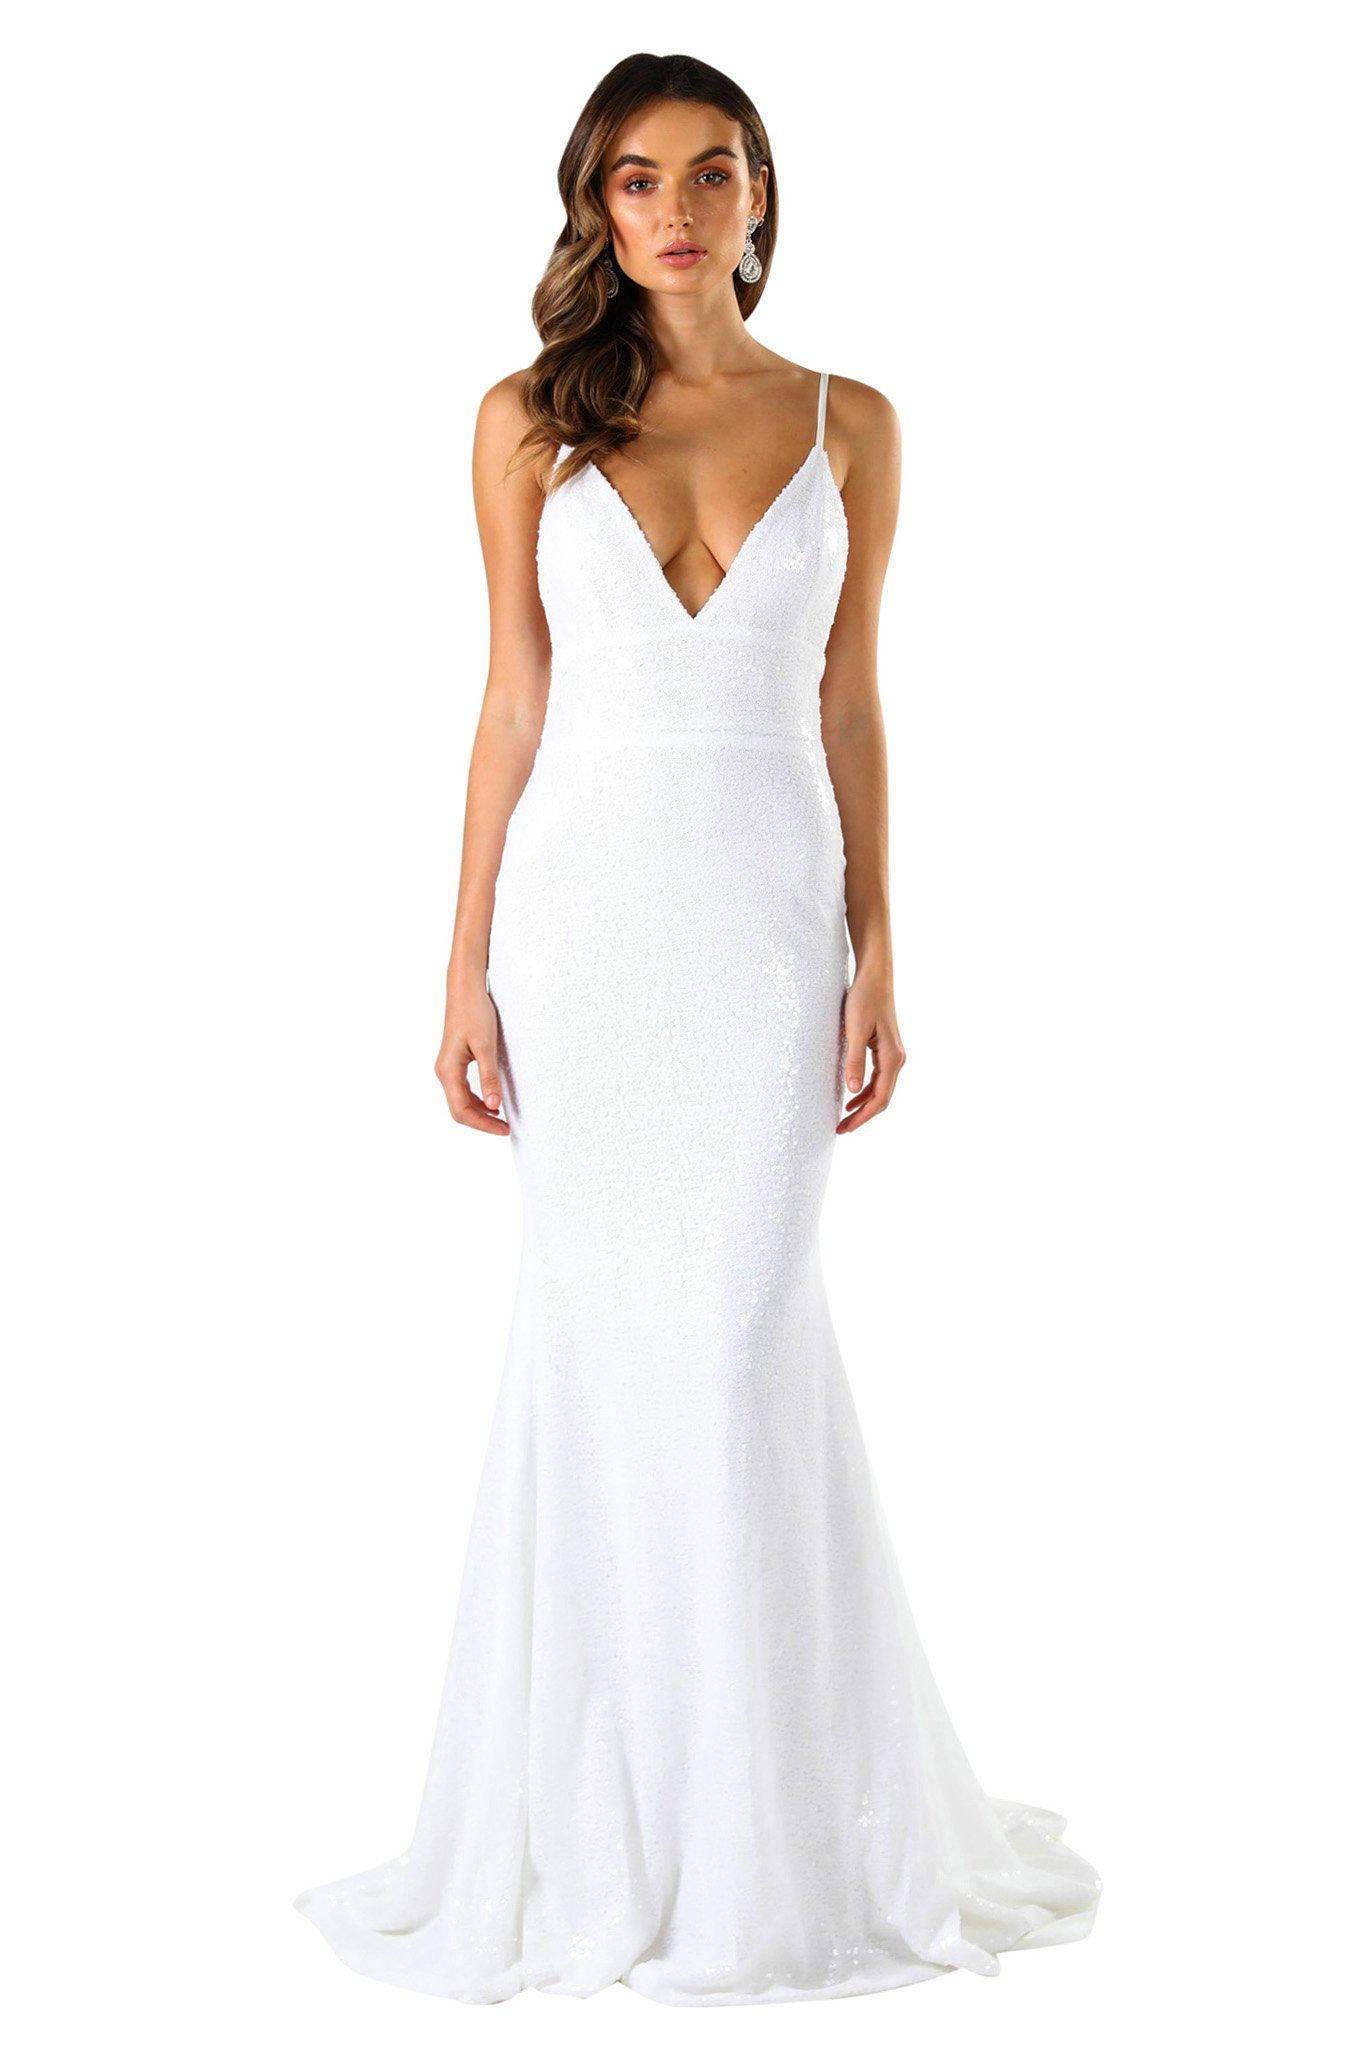 ... White Fitted Sequin Formal Wedding Sleeveless Gown featuring Deep V Neck 8c37df80c